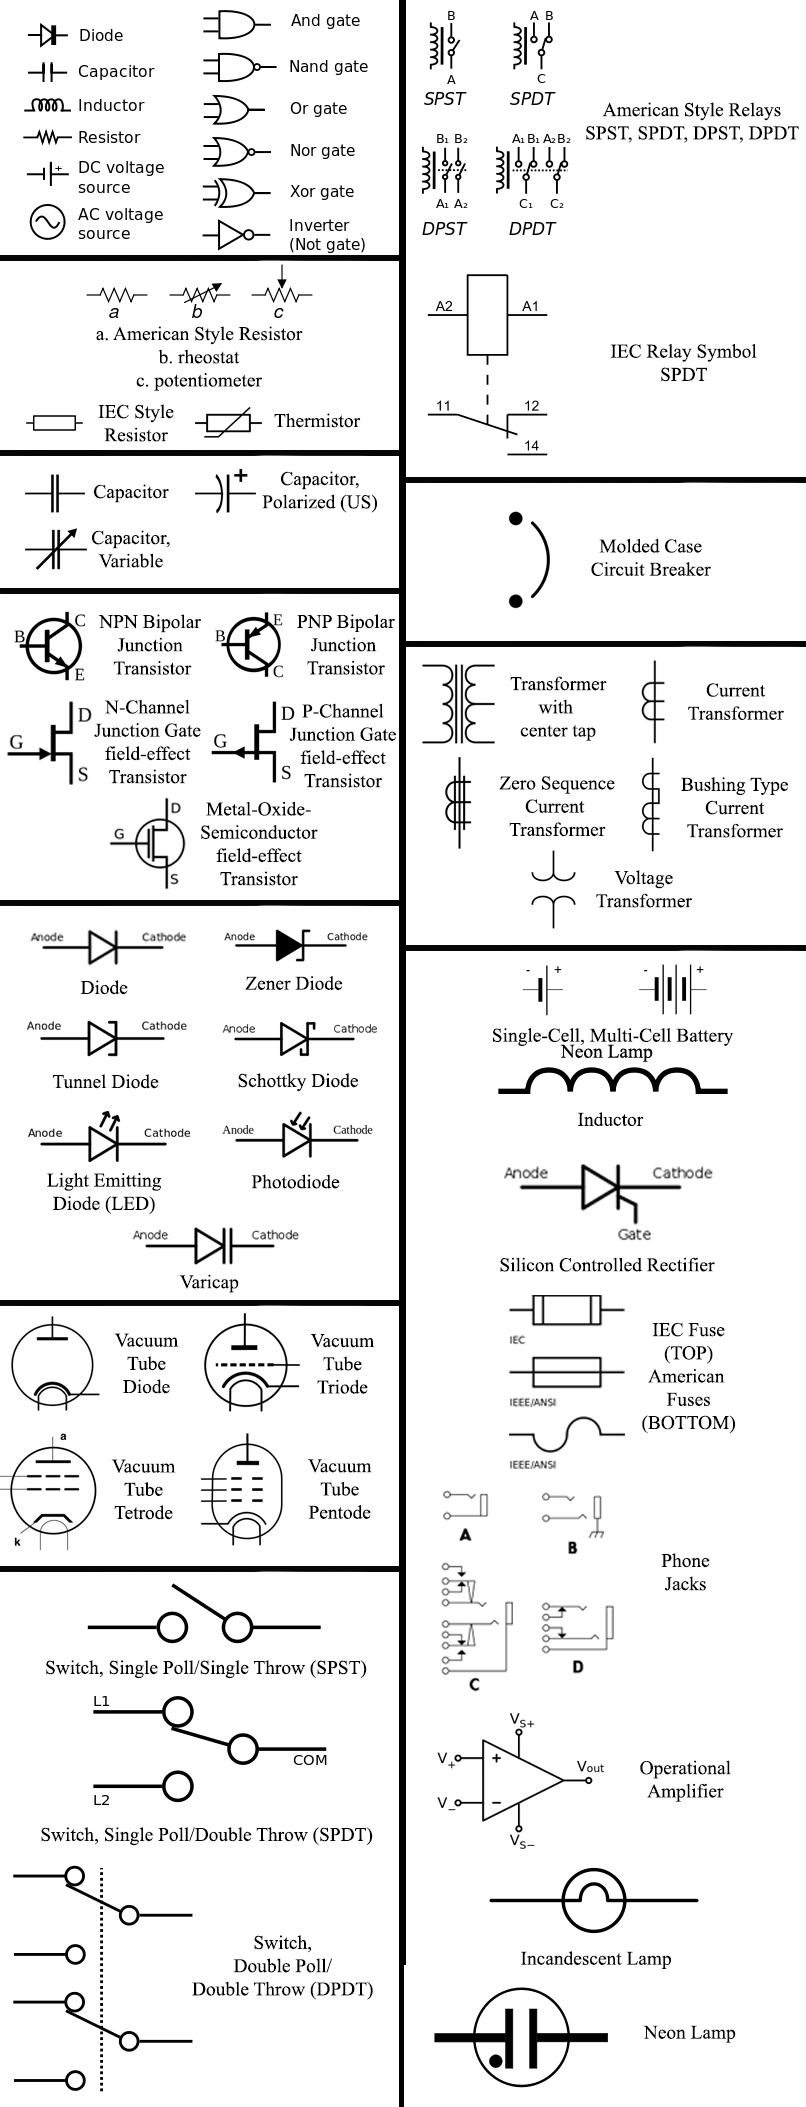 ELECTRICAL SYMBOLS AND QUANTITIES « TEKNIX CONCEPTS